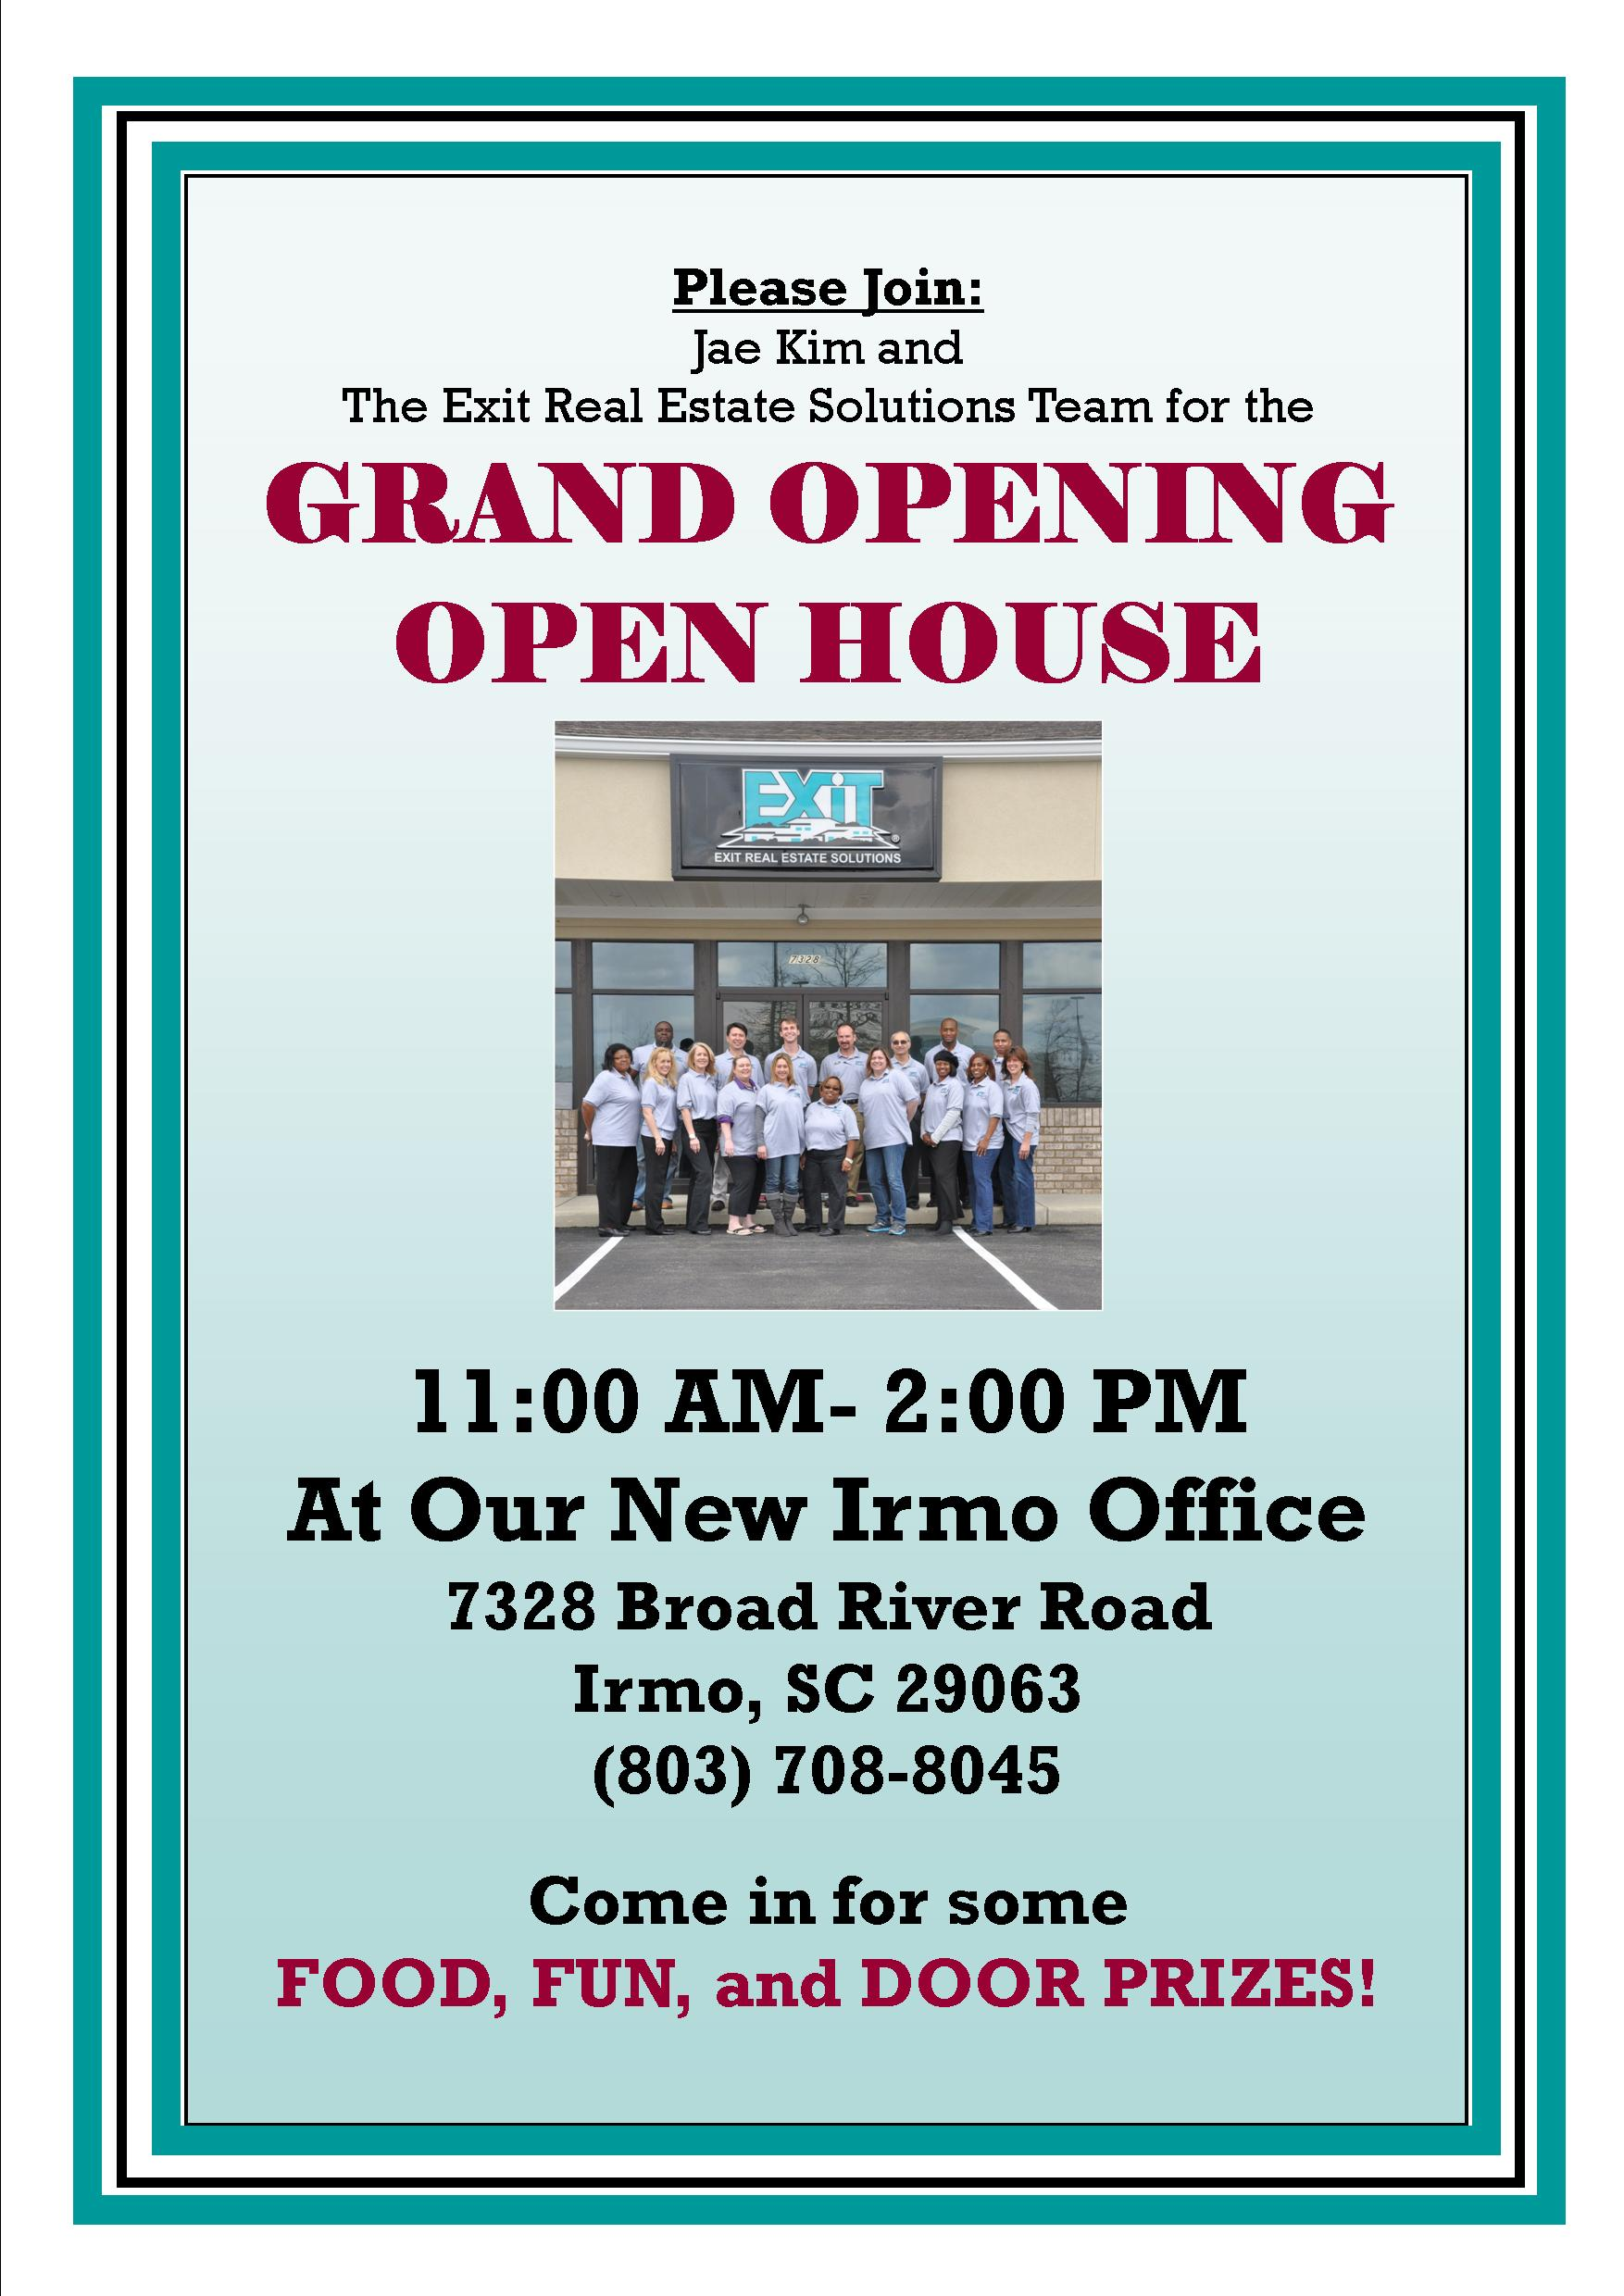 GRAND OPENING NEW IRMO OFFICE